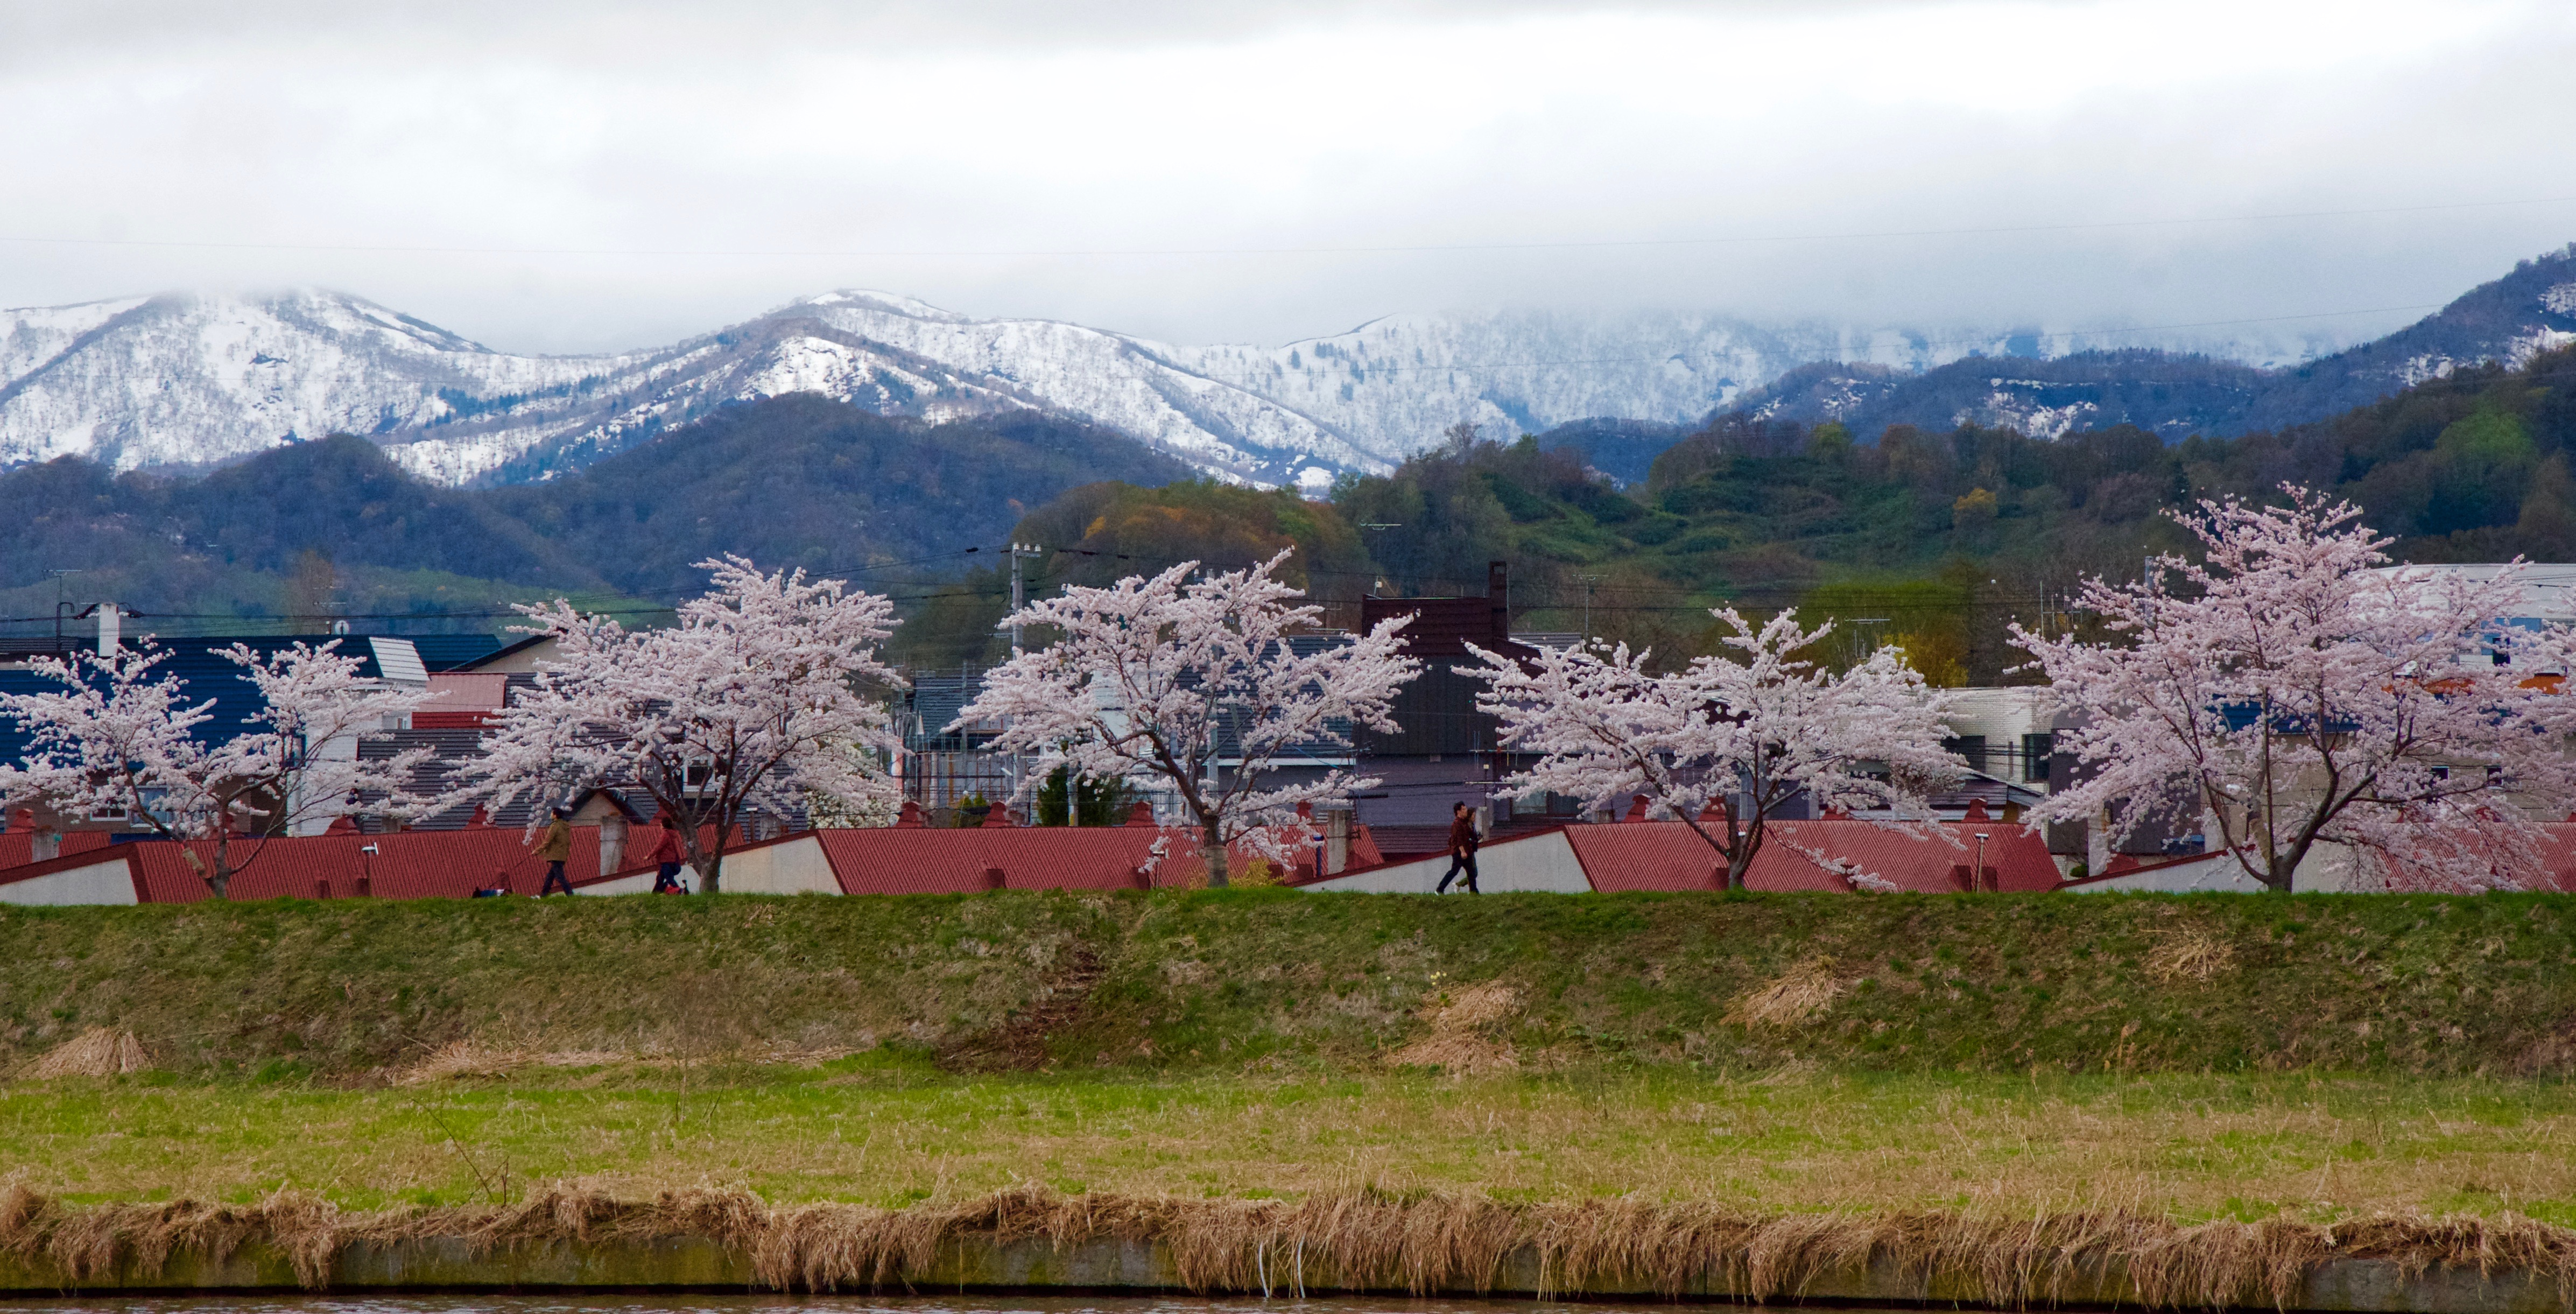 Cherry blossoms in Yoichi, Japan